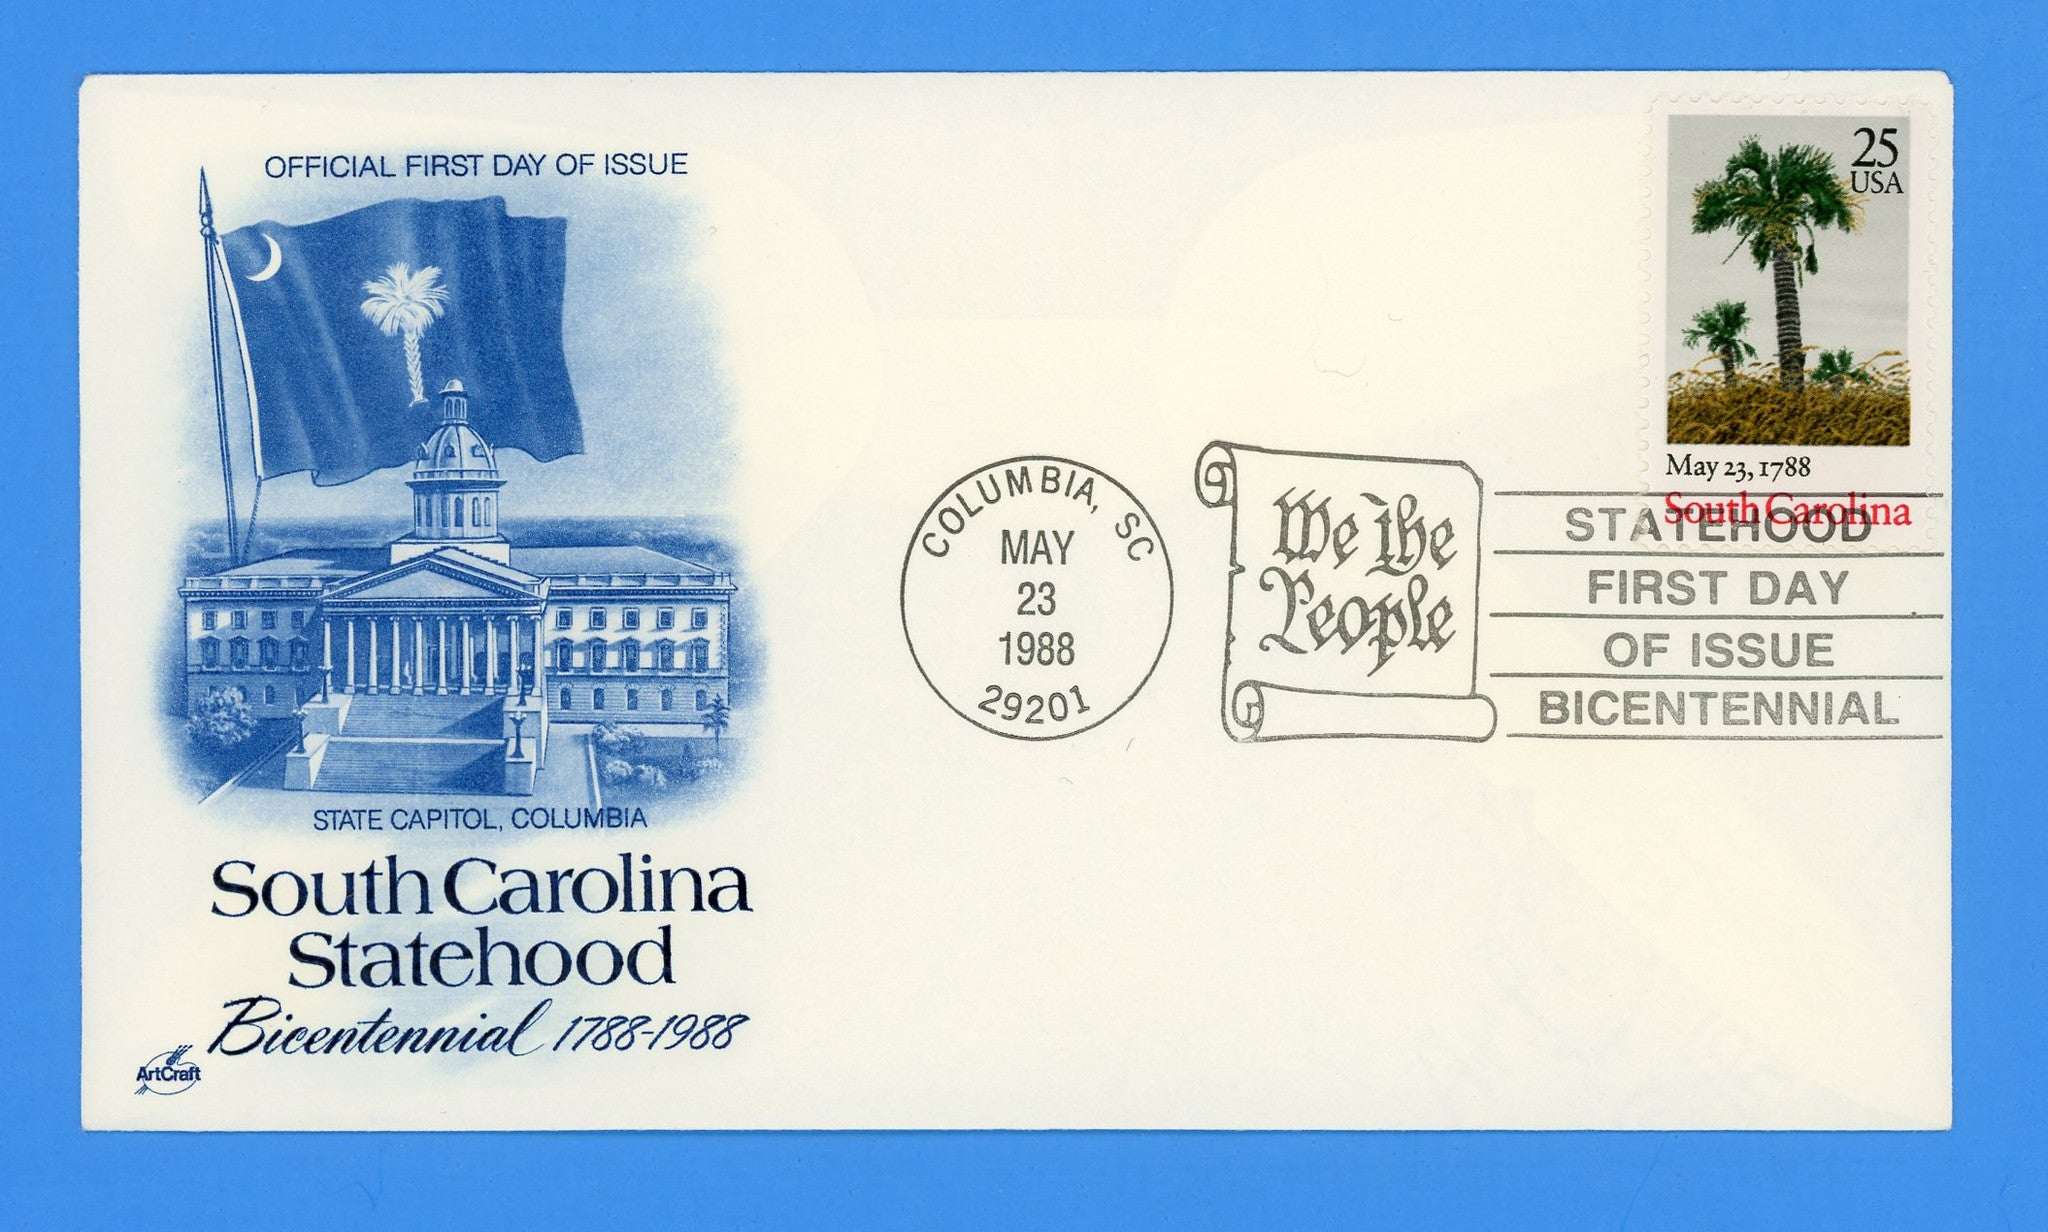 South Carolina Statehood First Day Cover by Artcraft